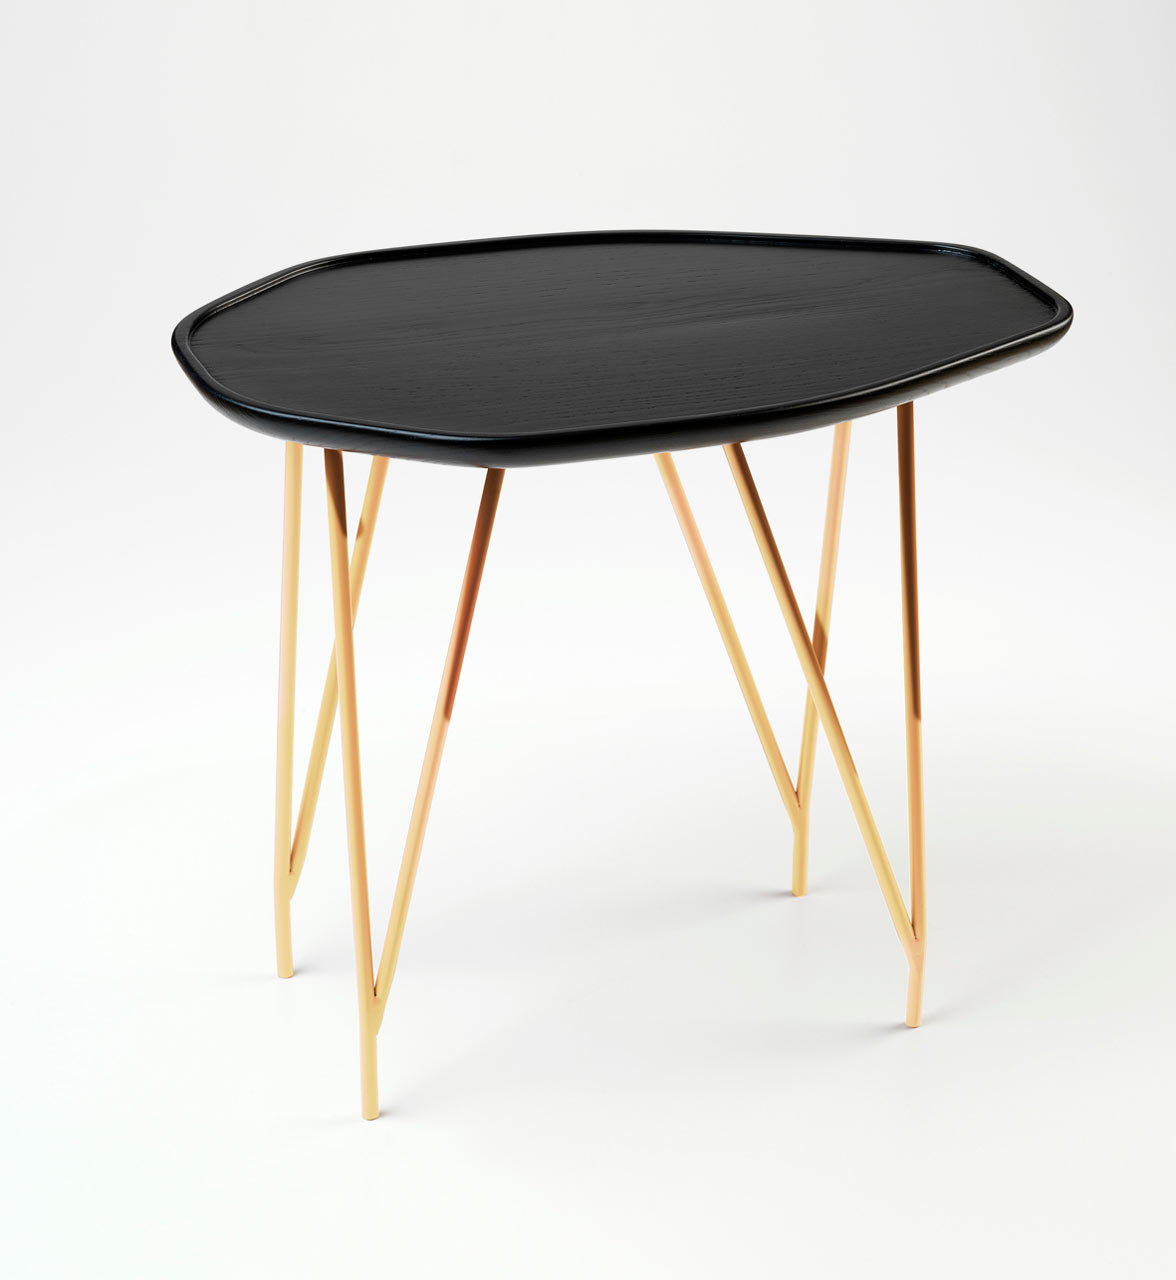 Versatile Tray Table By NVDRS Design Studio ...